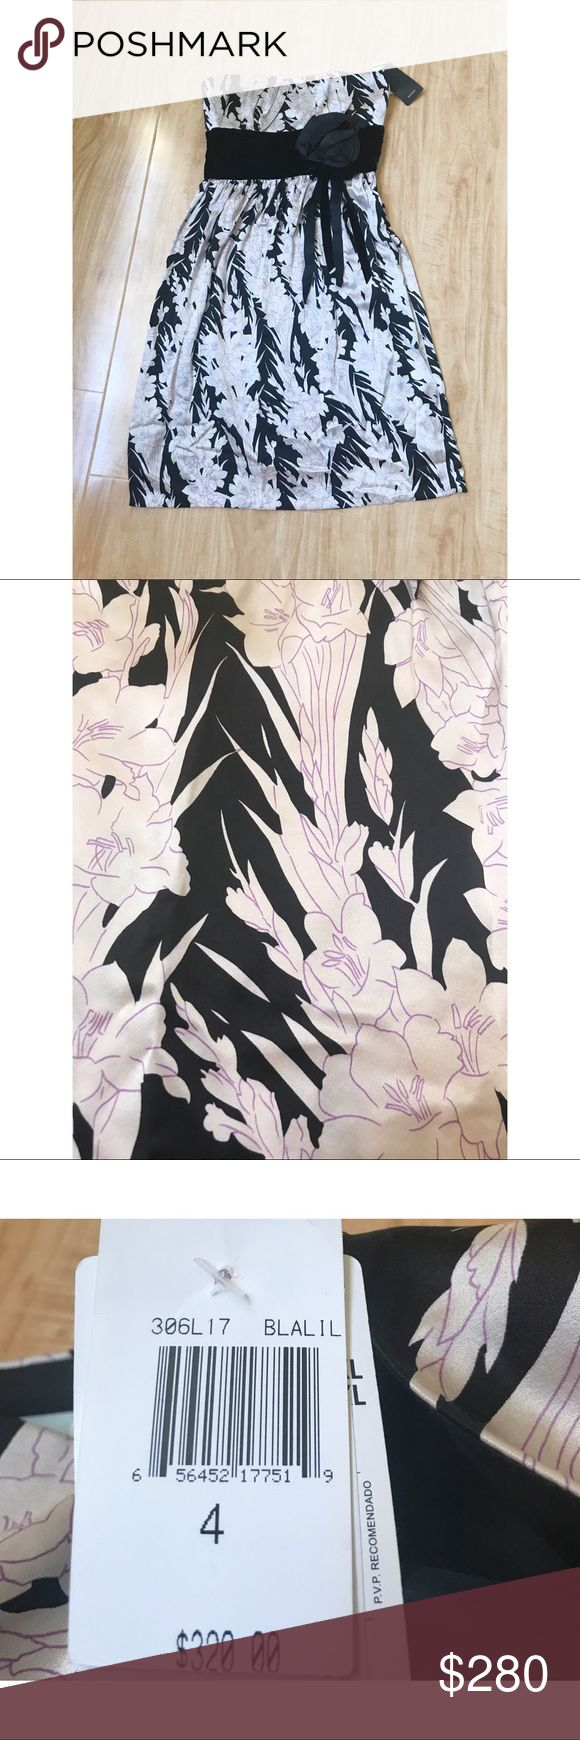 Tracy Reese Korean Silk Floral Black Detail Dress Size: 4. Please ask me further questions in the comments, I will be happy to answer! Tracy Reese Dresses